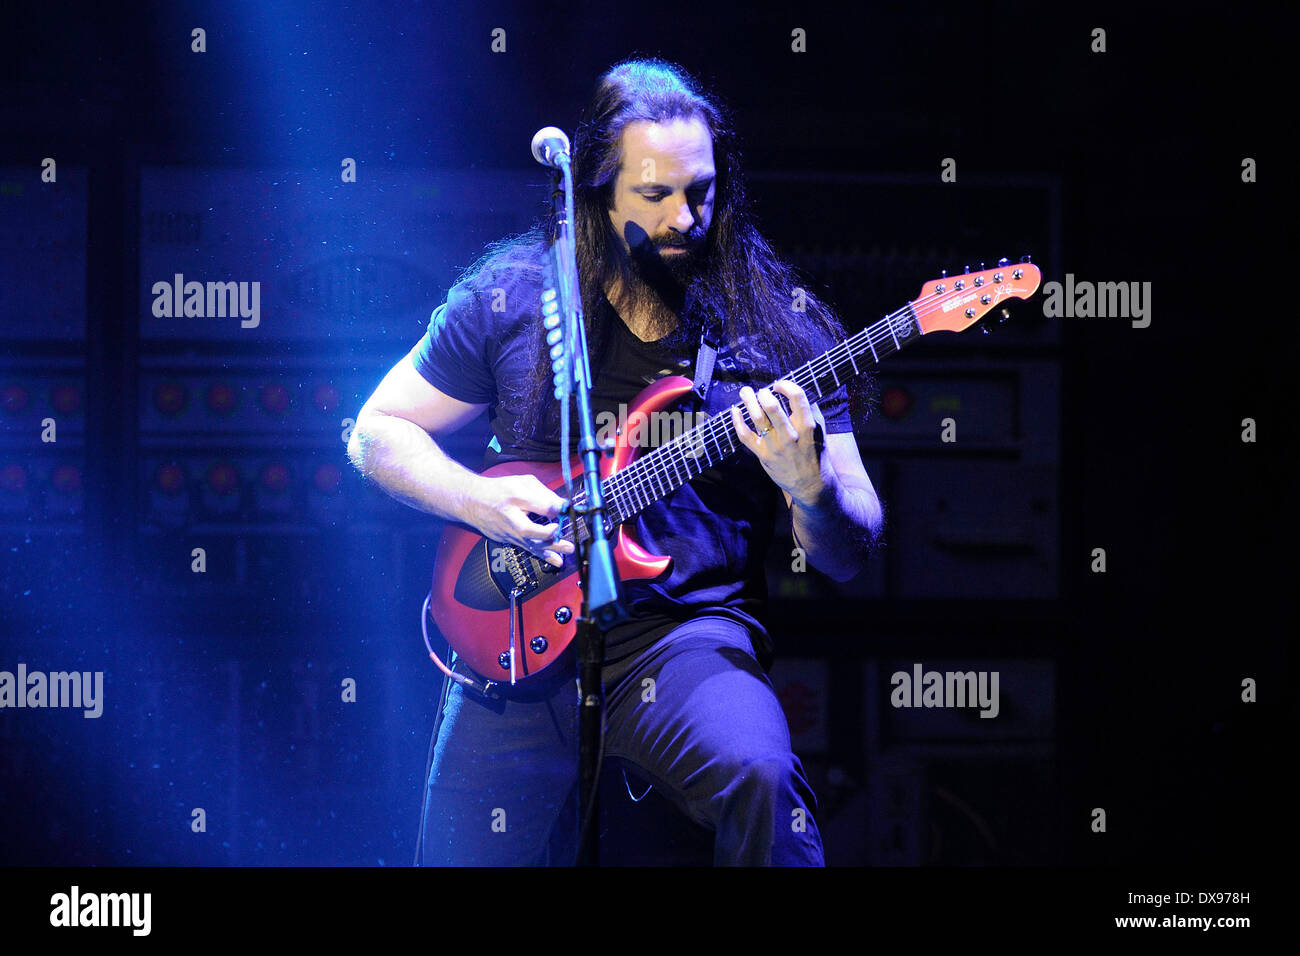 Toronto, Canada. 20th March 2014. American progressive metal rock band DREAM THEATER performs at Toronto's Massey Hall. In picture, lead guitarist John Petrucci. Credit:  EXImages/Alamy Live News - Stock Image